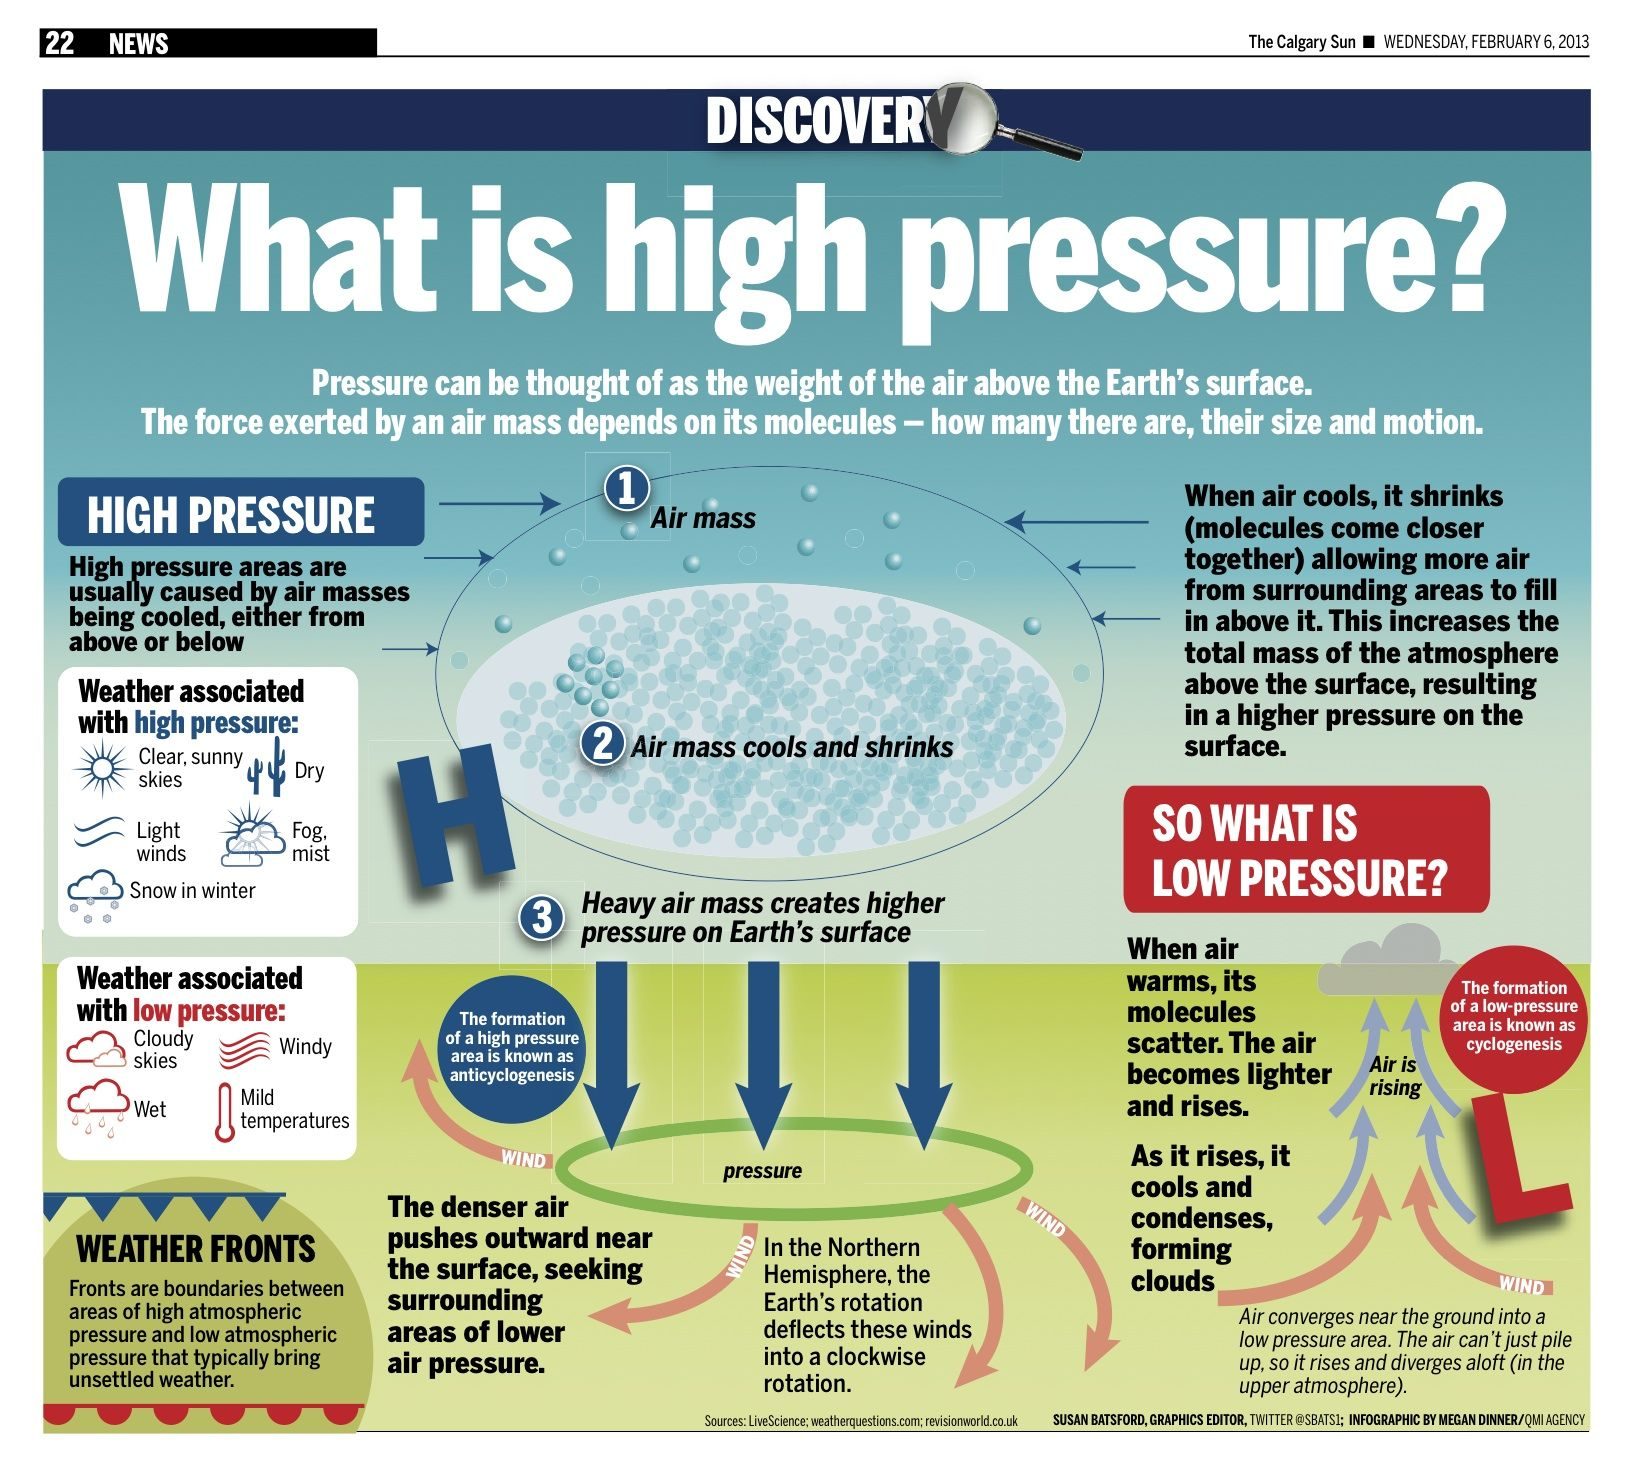 Pressure Can Be Thought Of As The Weight Of The Air Above